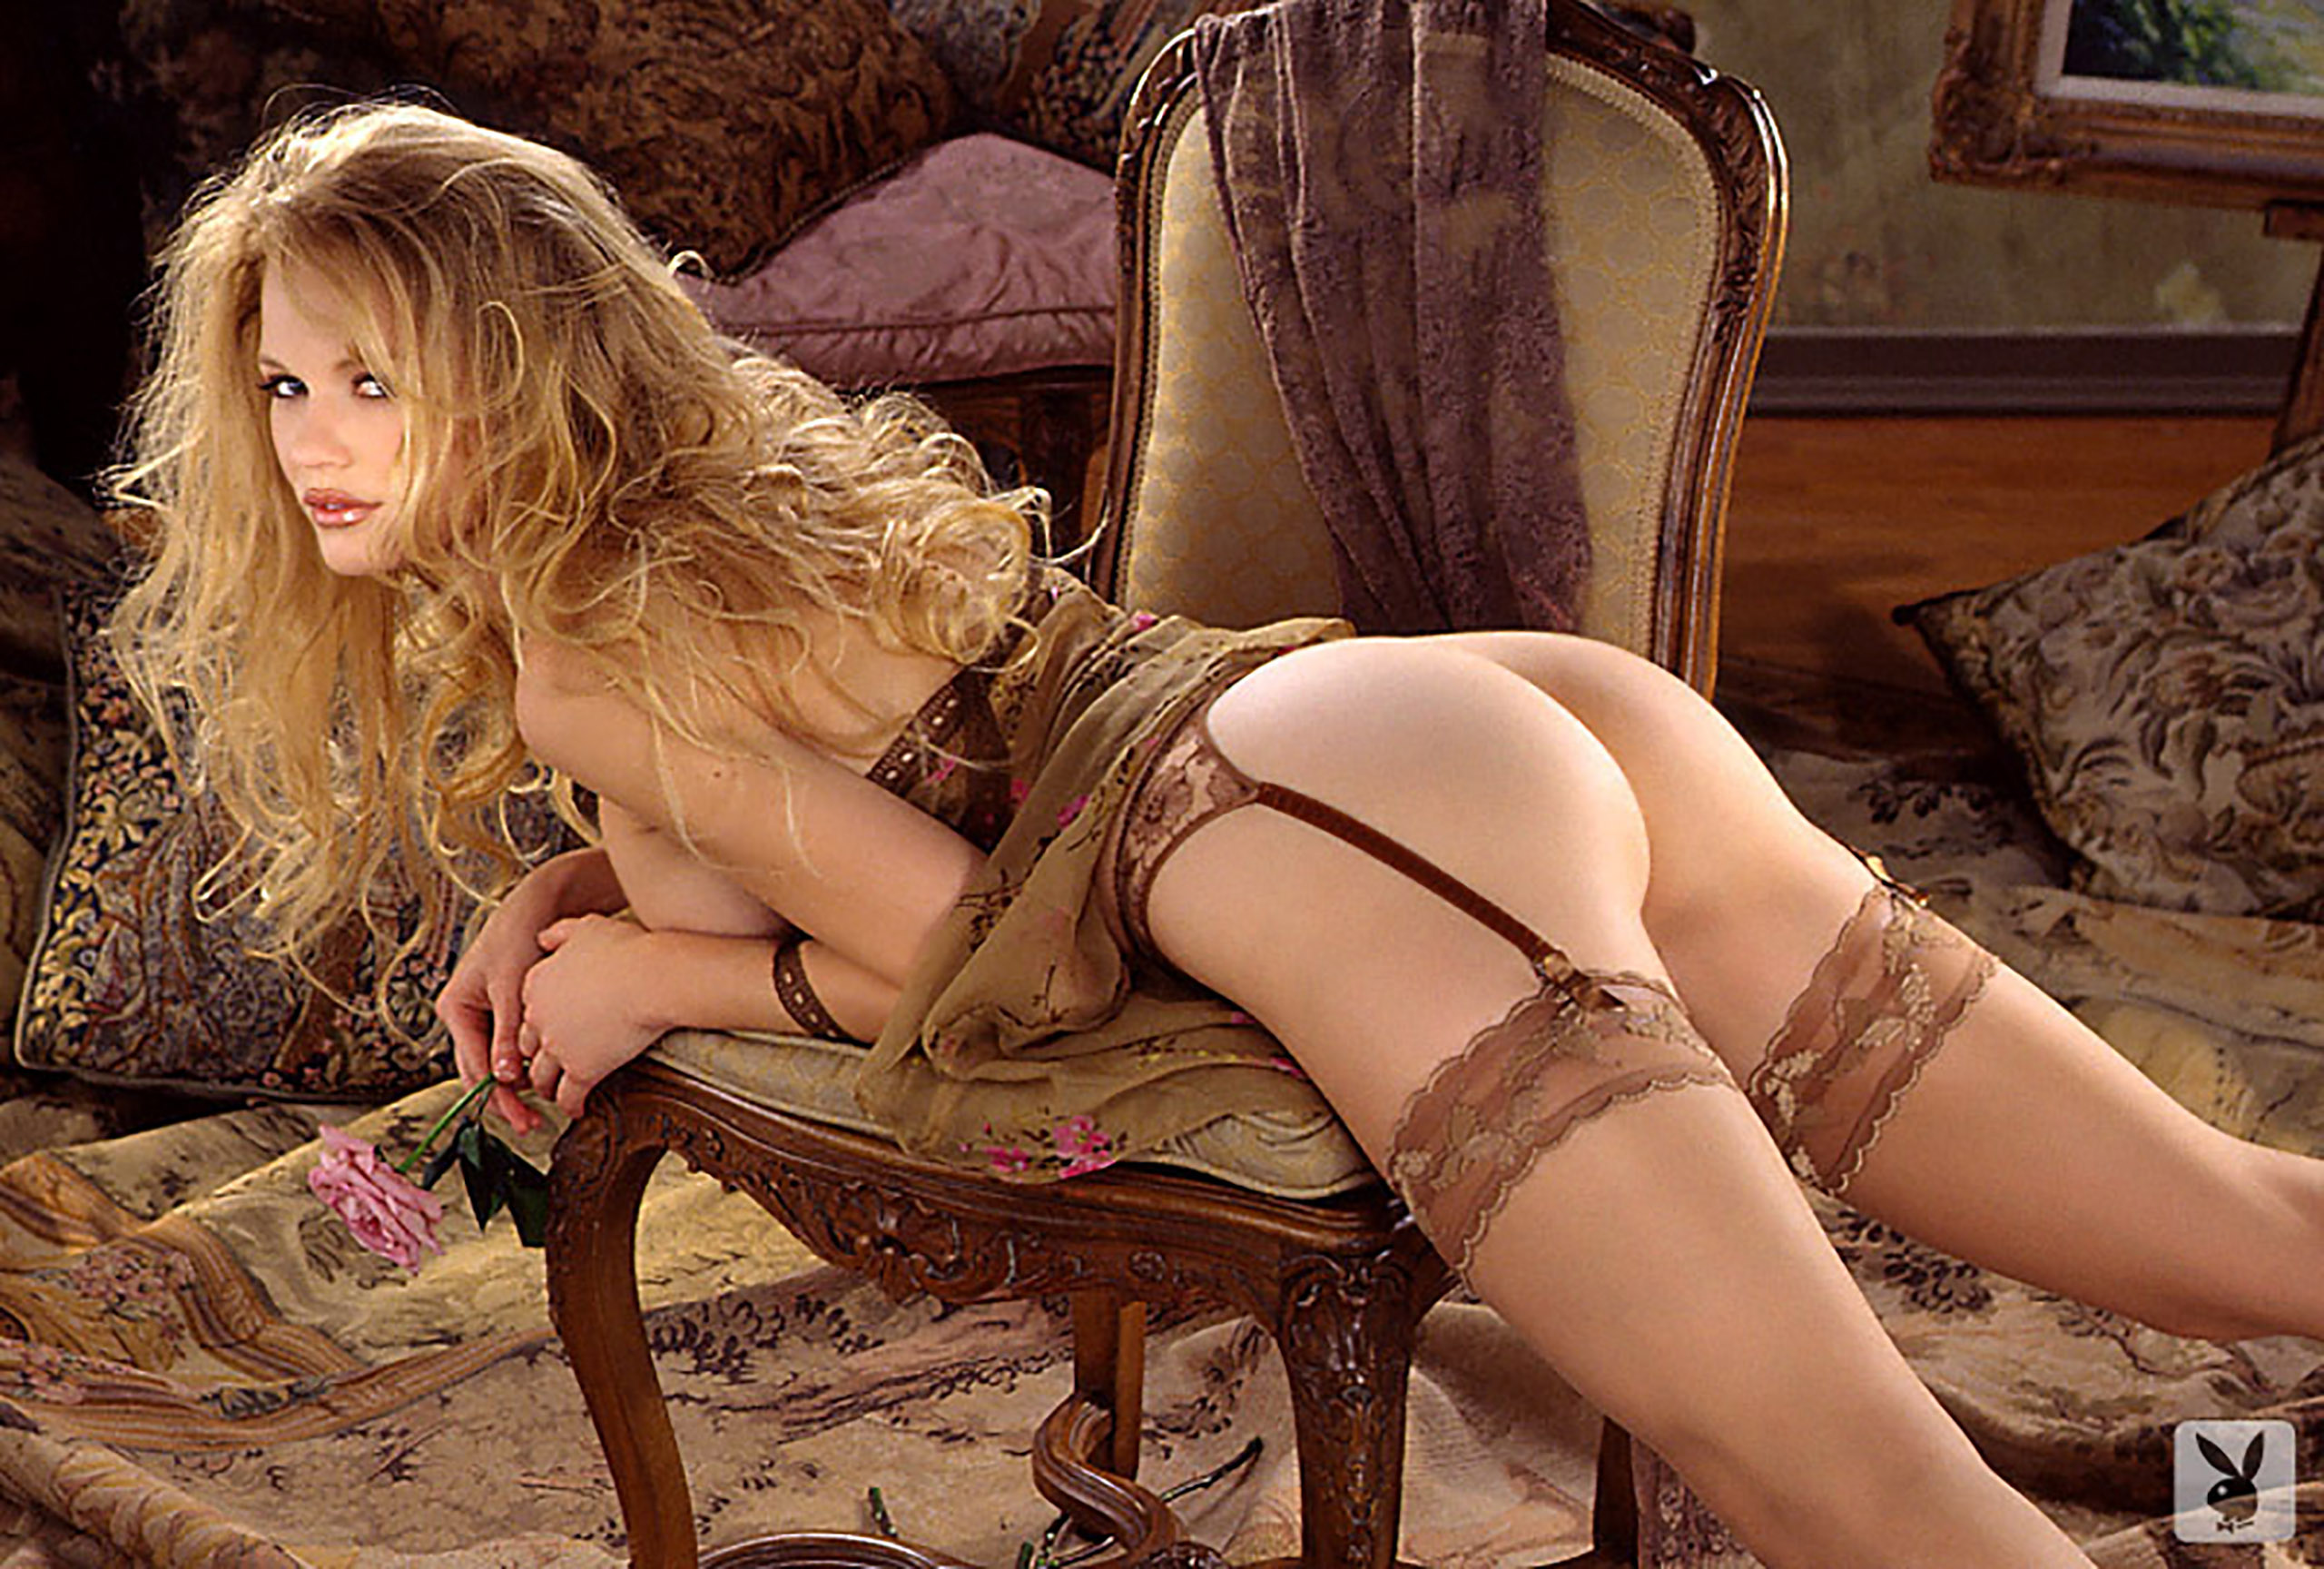 giving-shannon-tweed-completely-nude-wallpaper-gallery-alex-reid-beauty